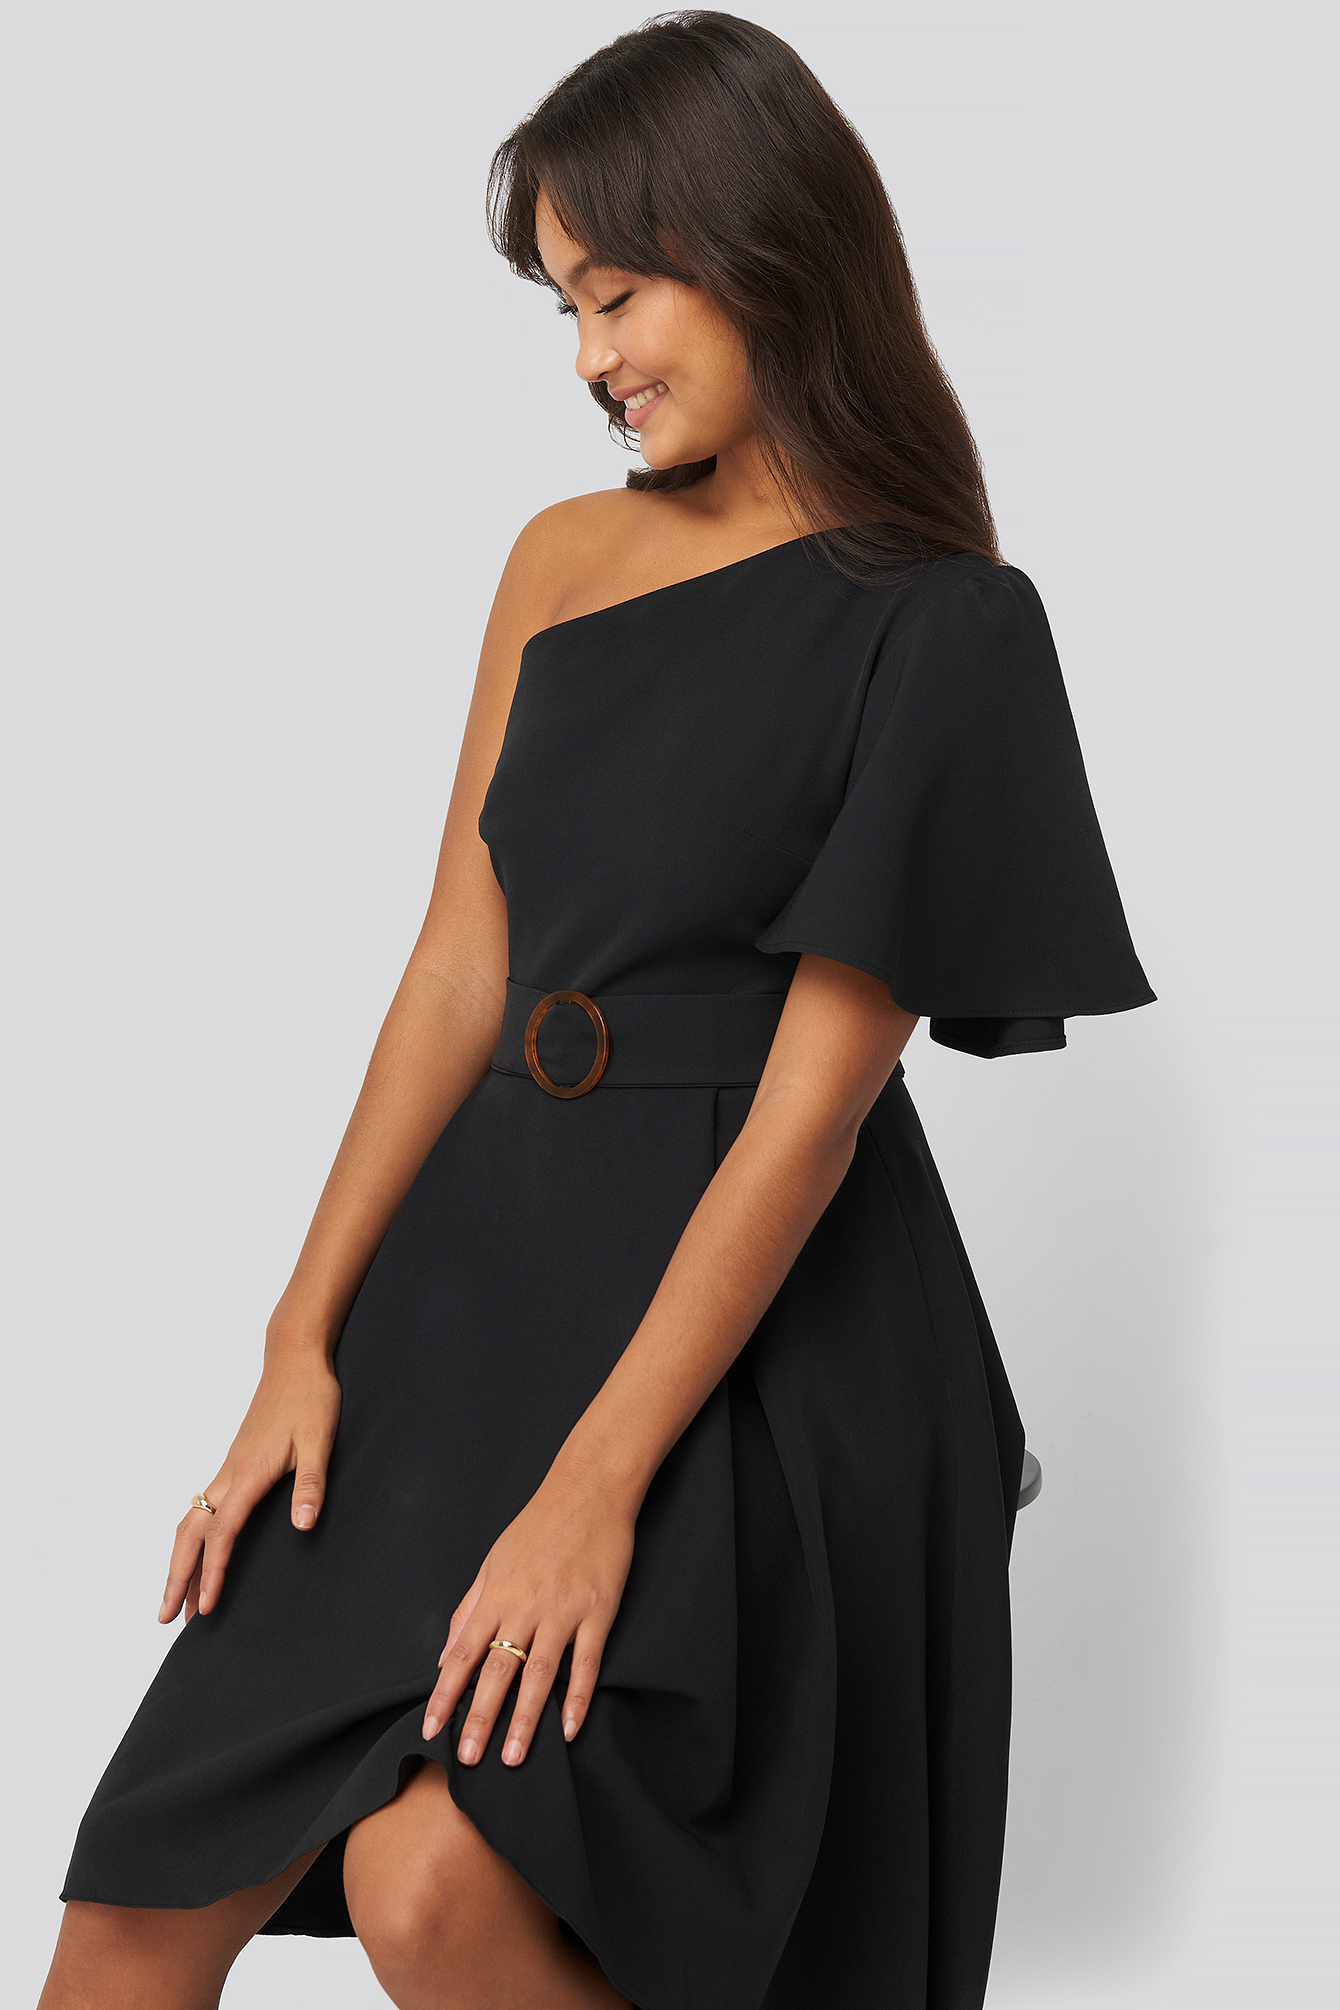 Black One Shoulder Belted Midi Dress